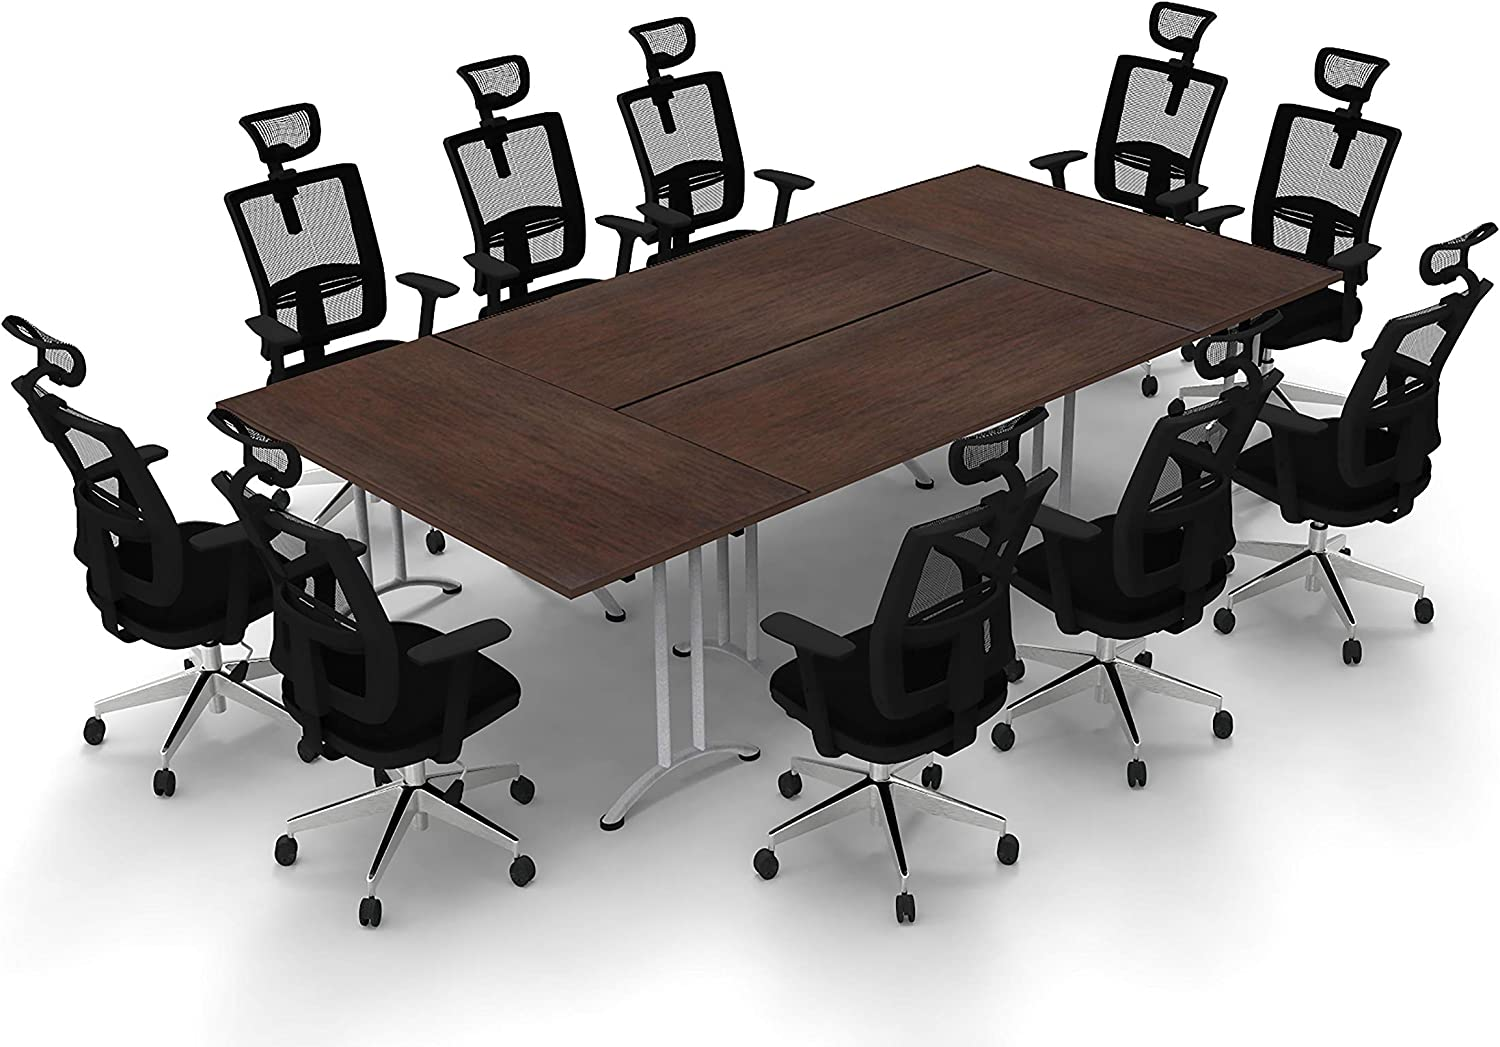 Amazon.com: Conference Tables Meeting Tables Seminar Tables